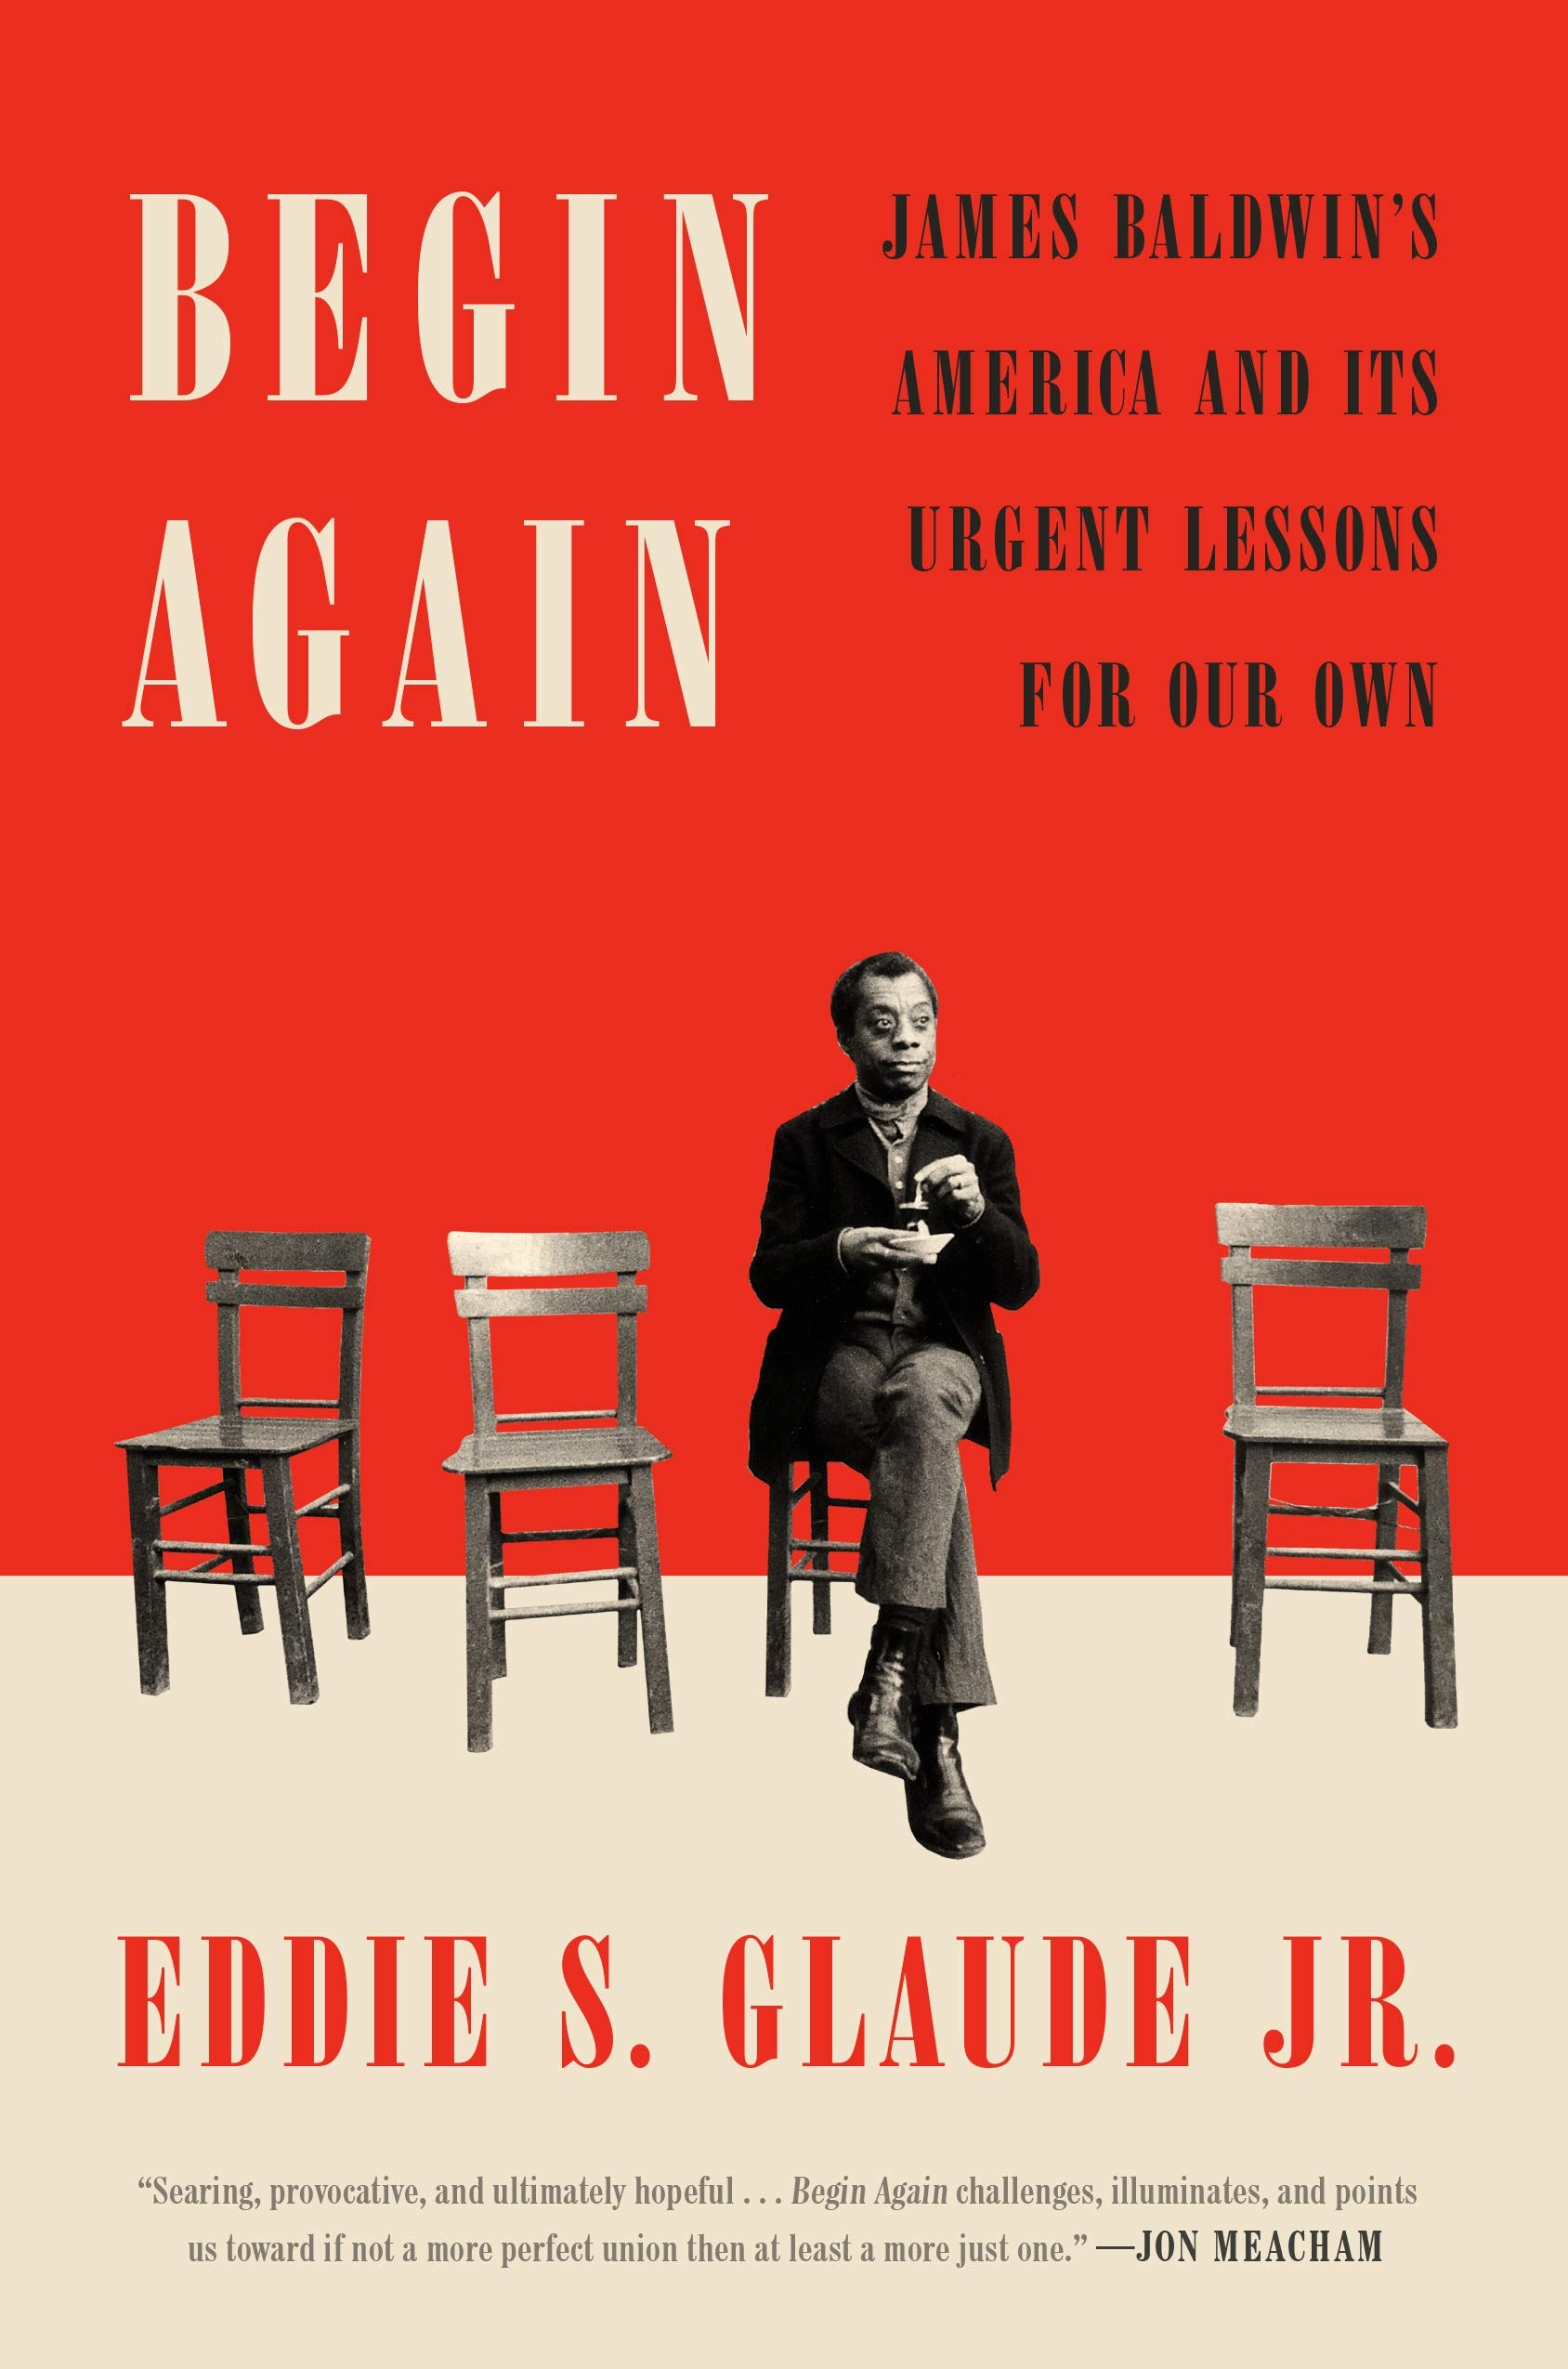 Begin Again James Baldwin S America And Its Urgent Lessons For Our Own Glaude Jr Eddie S 9780525575320 Amazon Com Books